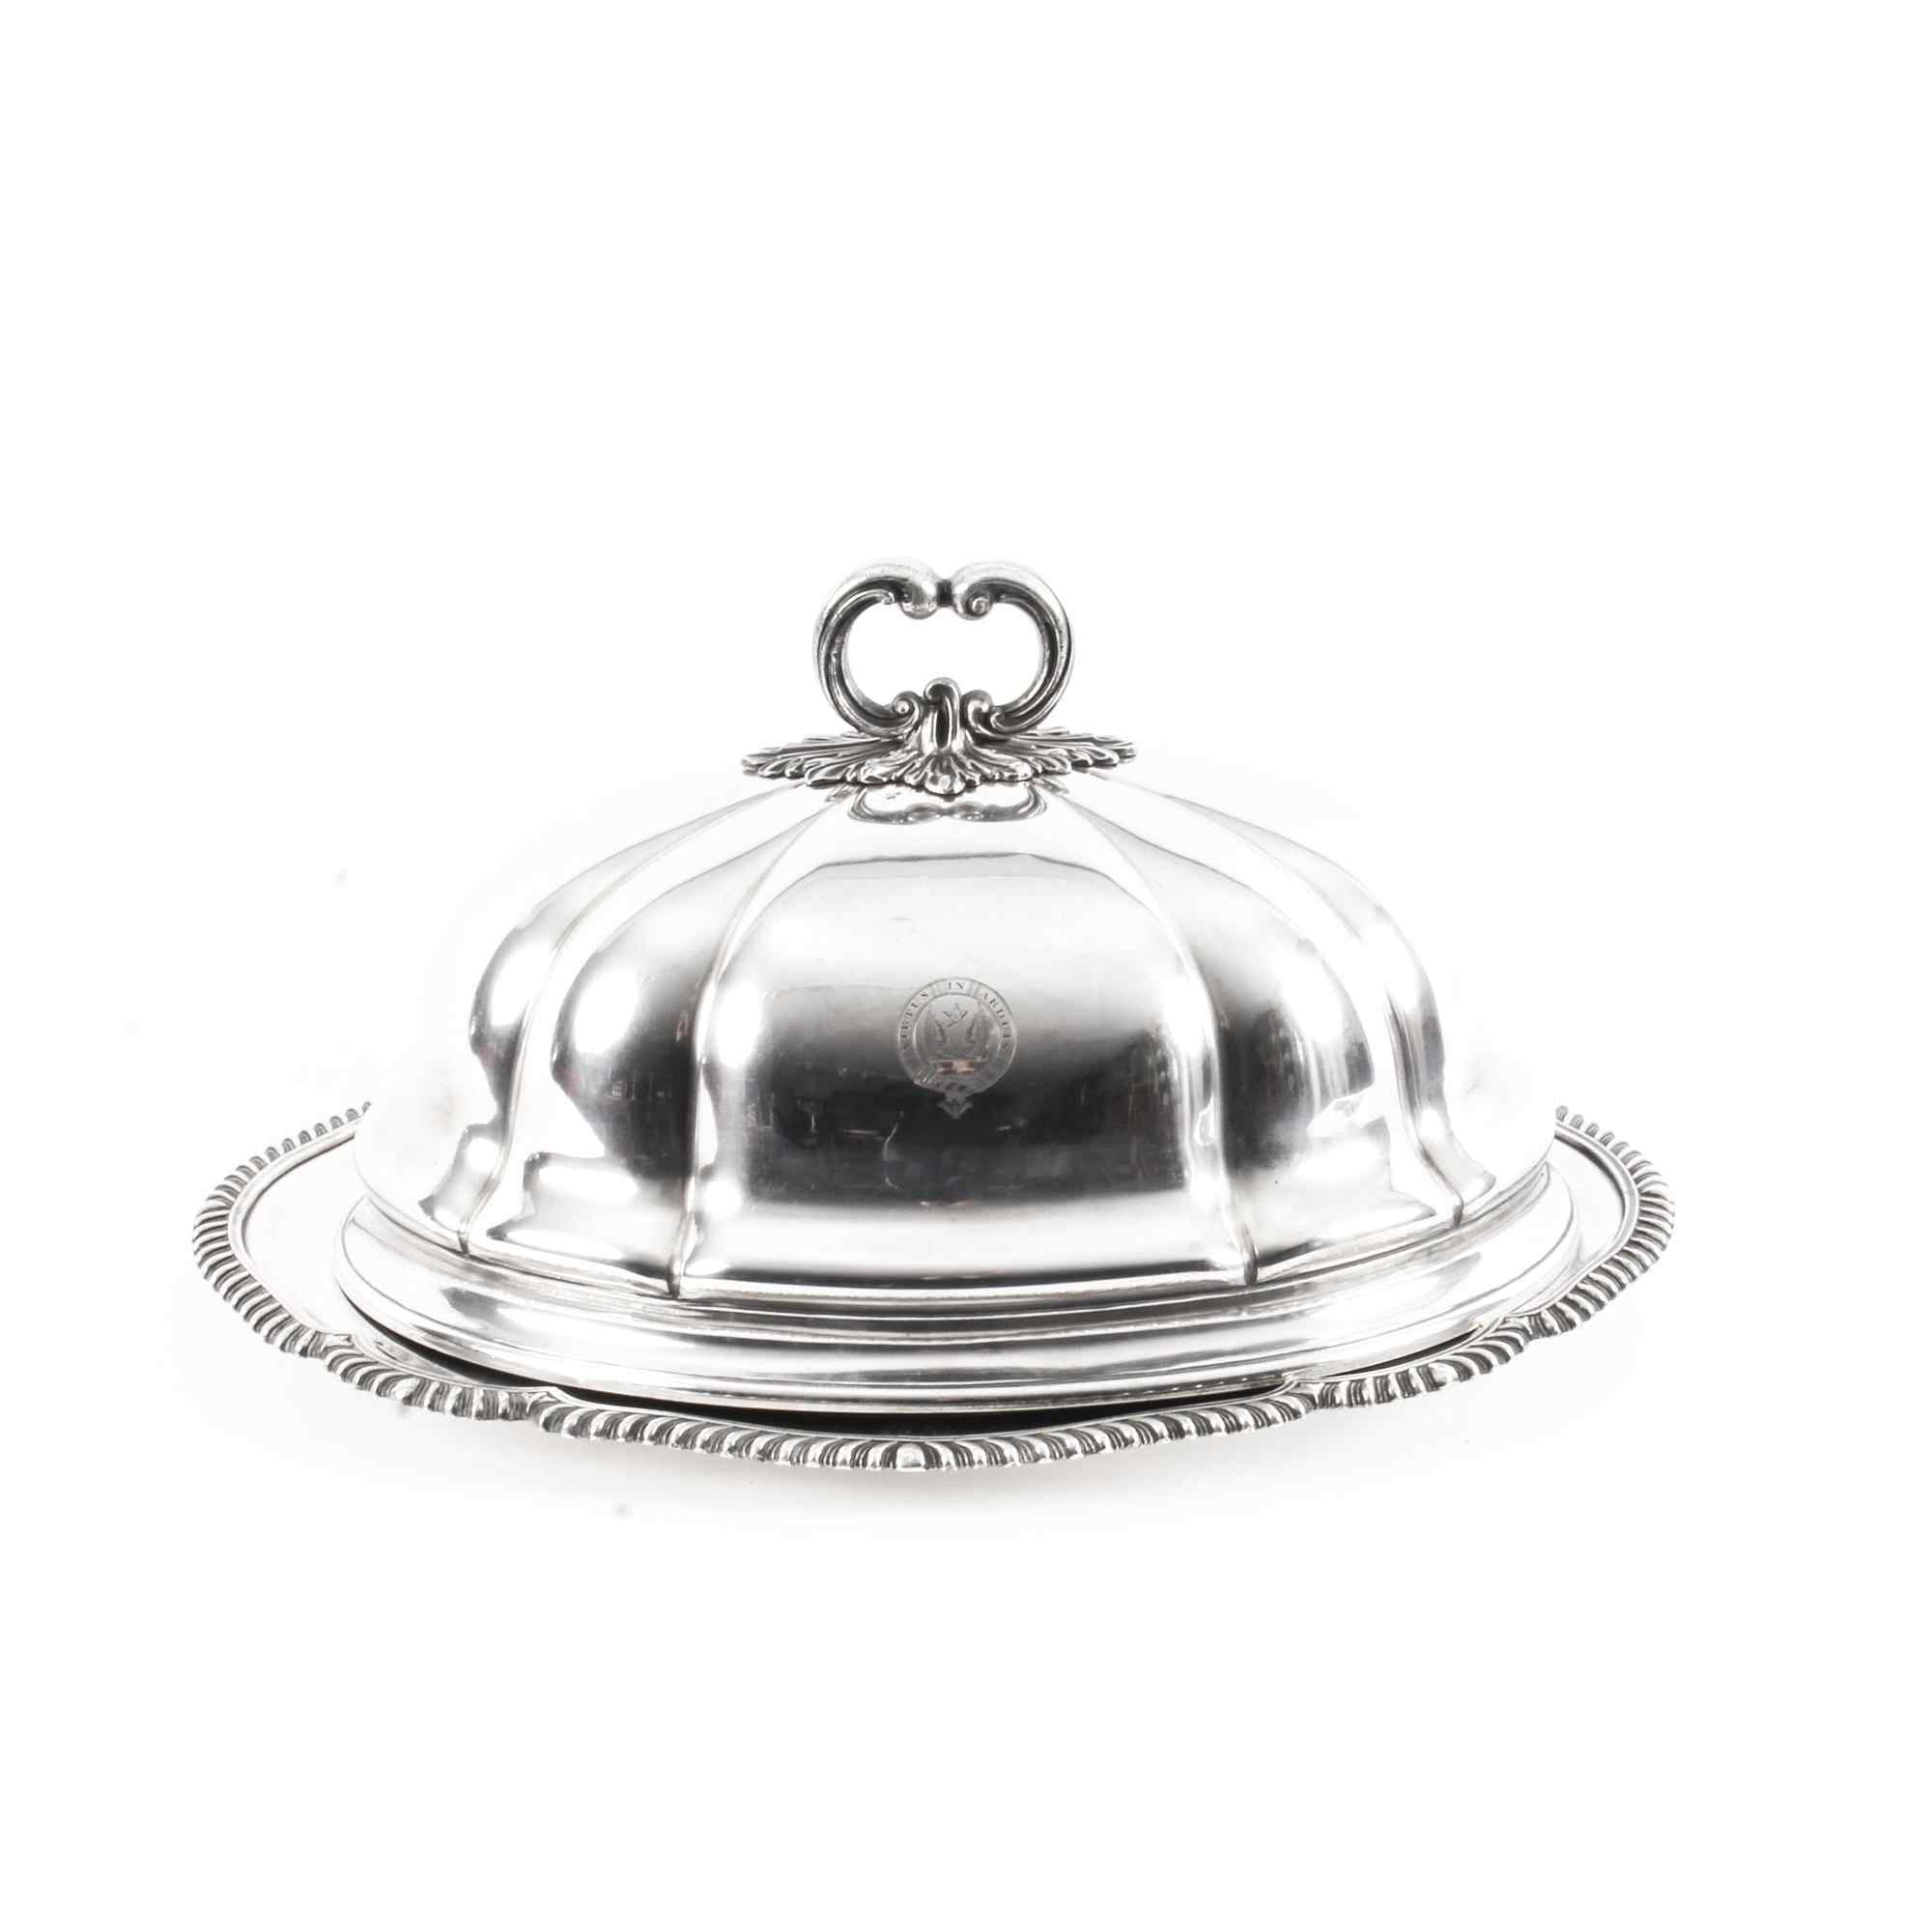 Terrine ovale victorienne ancienne Sheffield ovale et couver